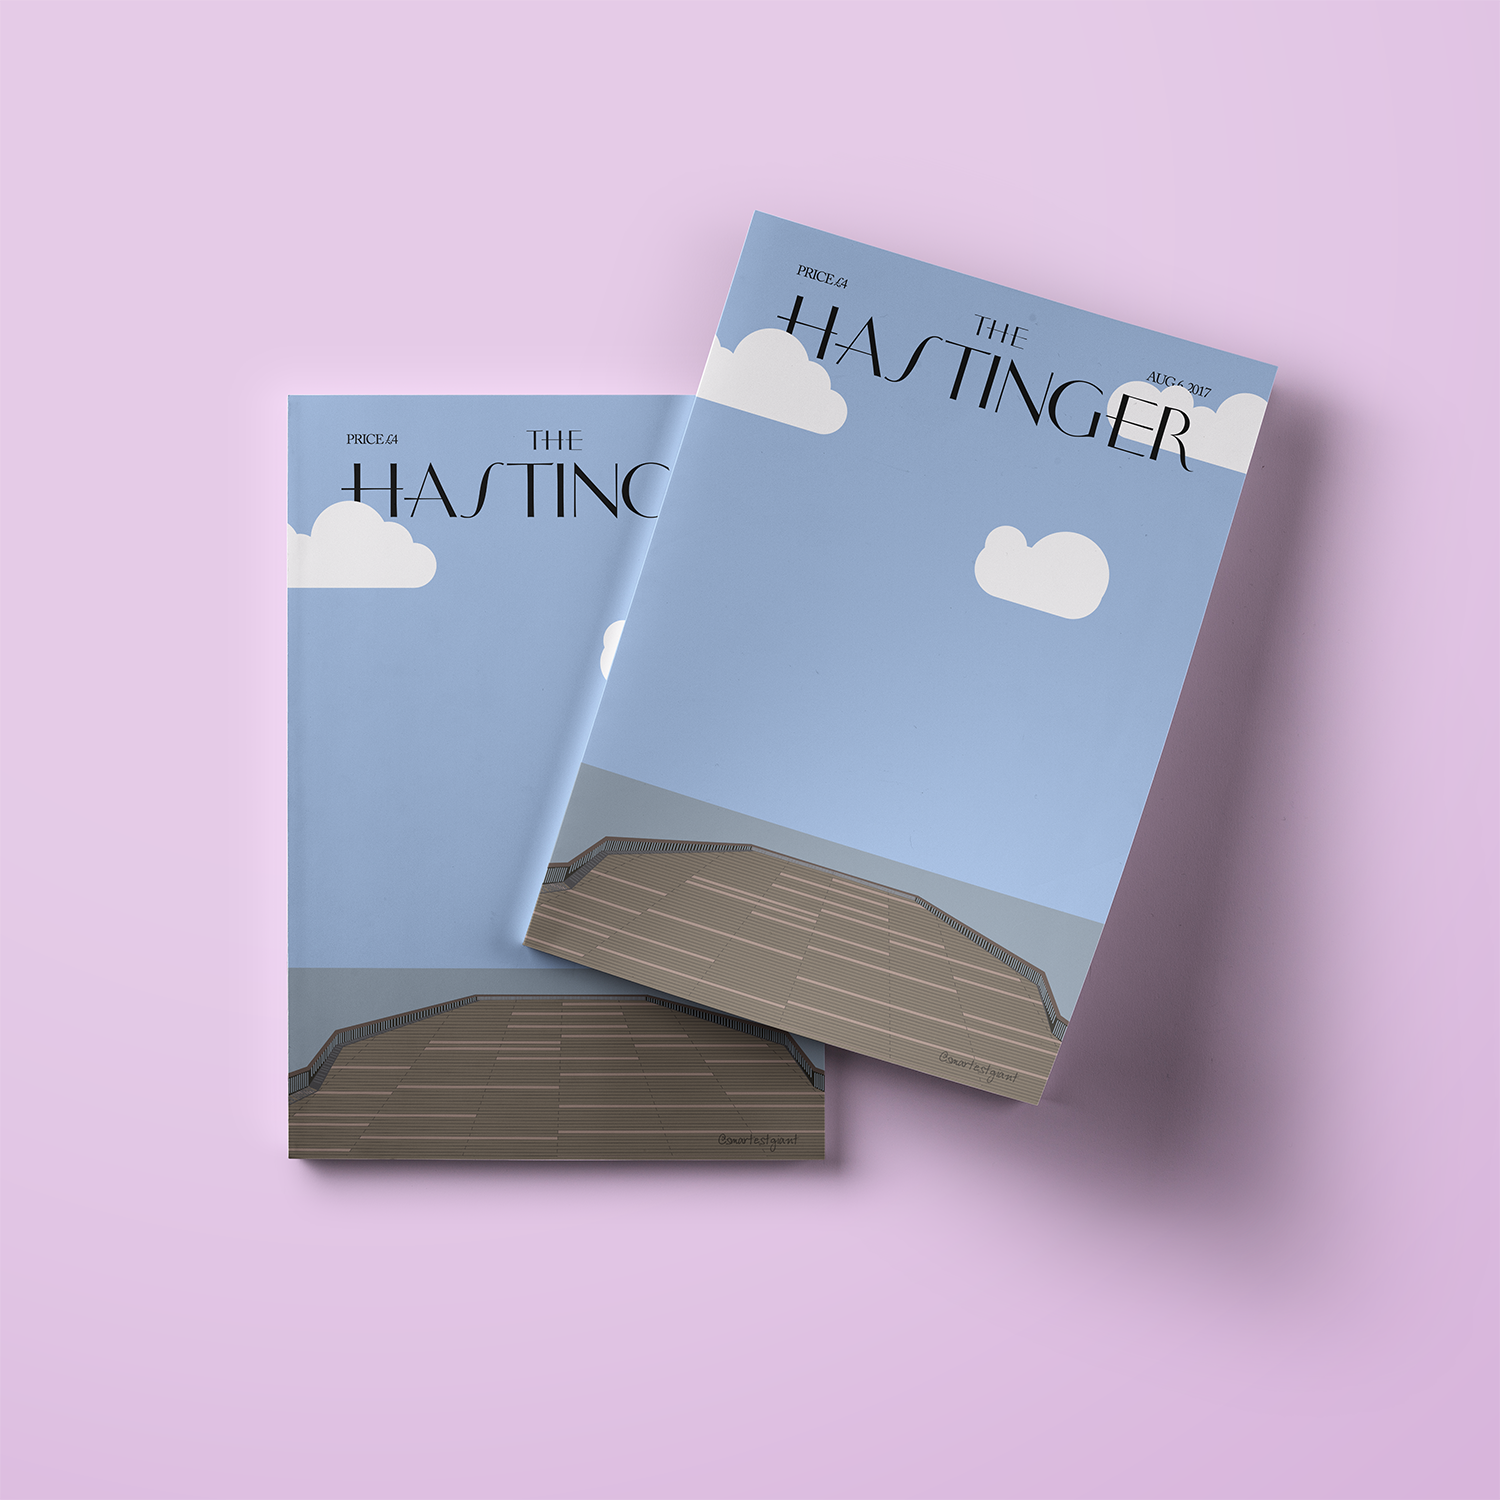 hastinger_cover_3.png